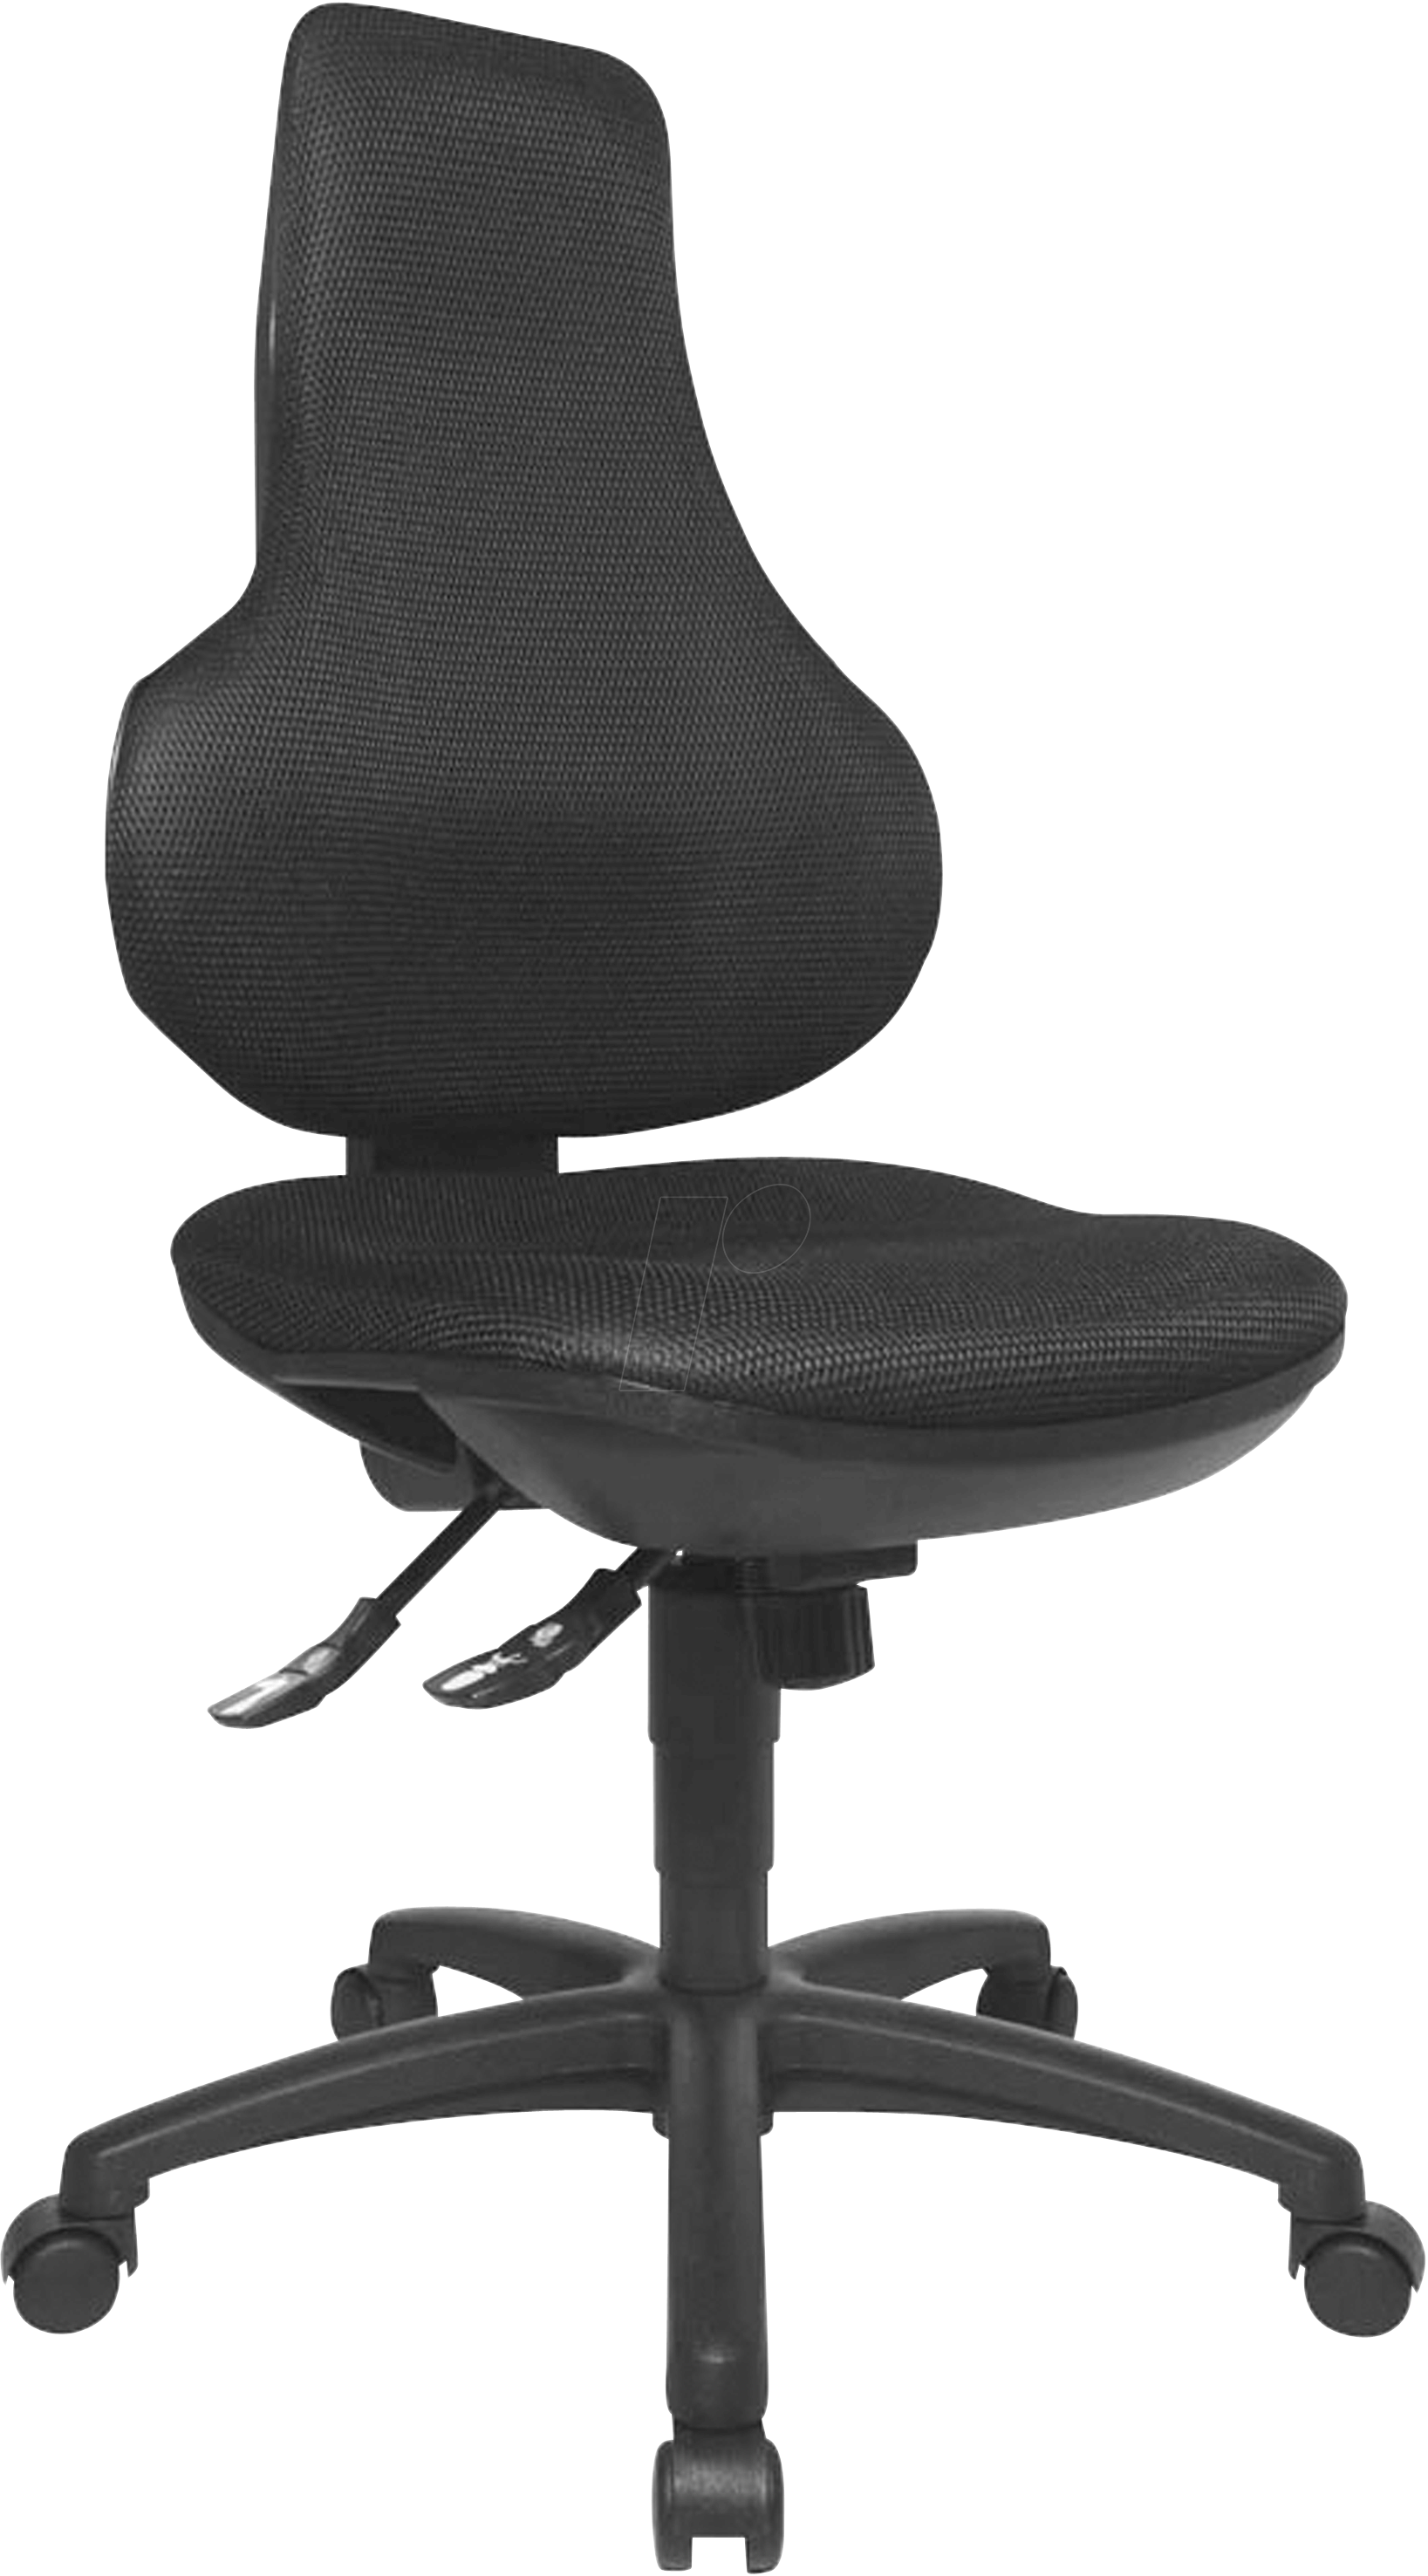 revolving chair supplier chicago bears chairs tst epo2bb0 topstar ergo point sy office black at